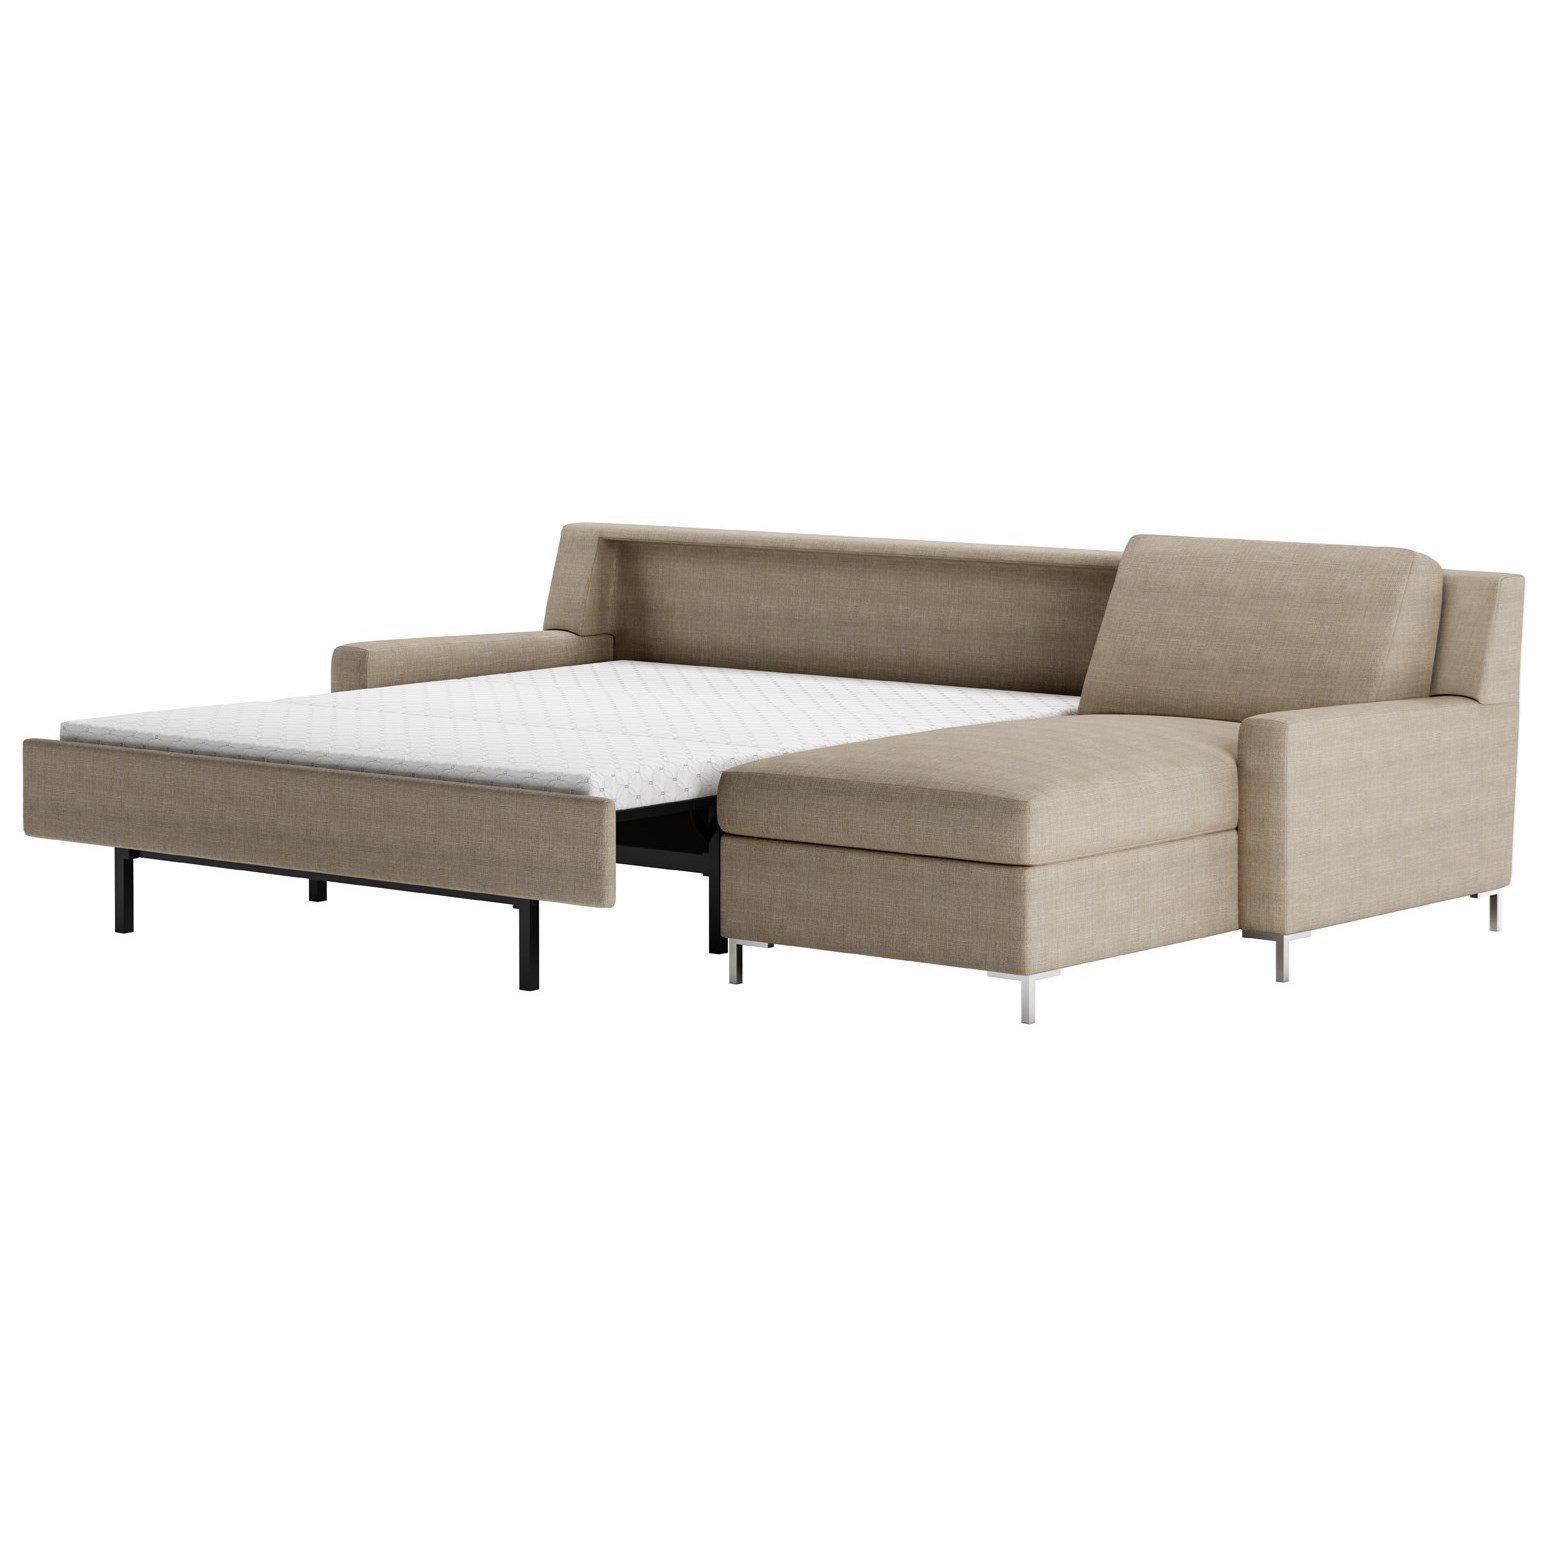 American Leather Bryson2 Pc Sectional Sofa W/ Sleeper U0026 LAS Chaise